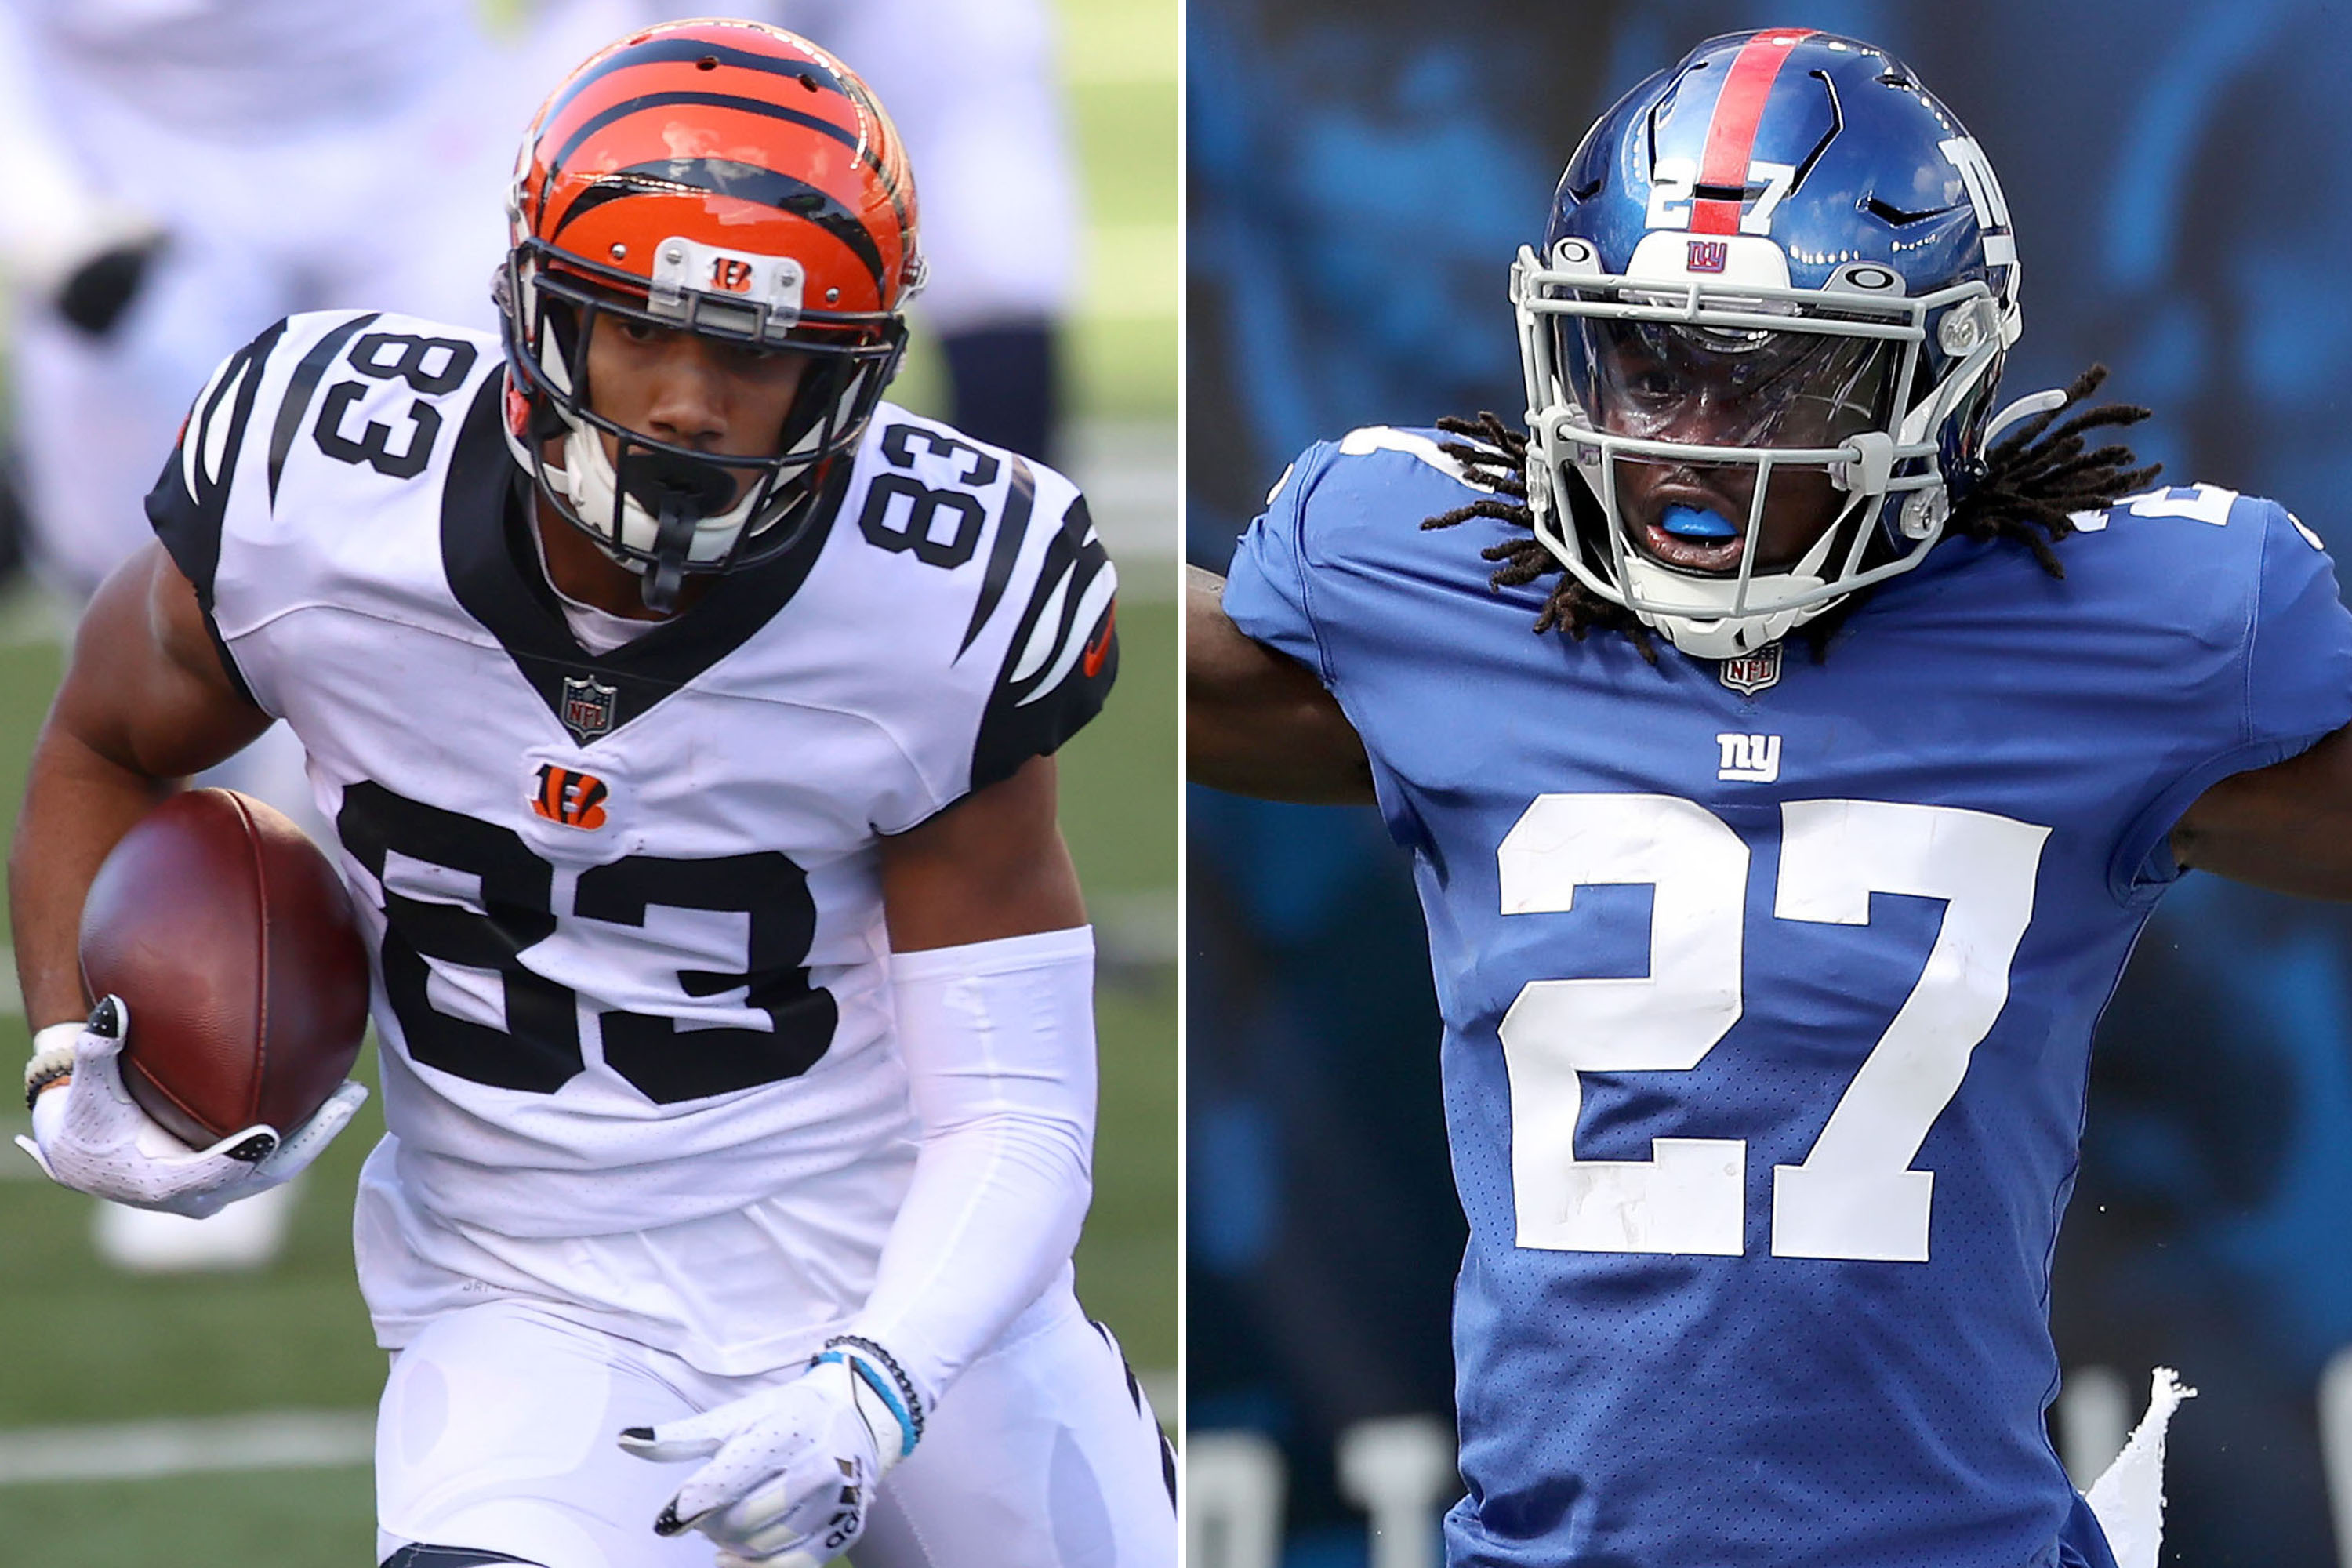 Giants vs. Bengals: Preview, predictions, what to watch for